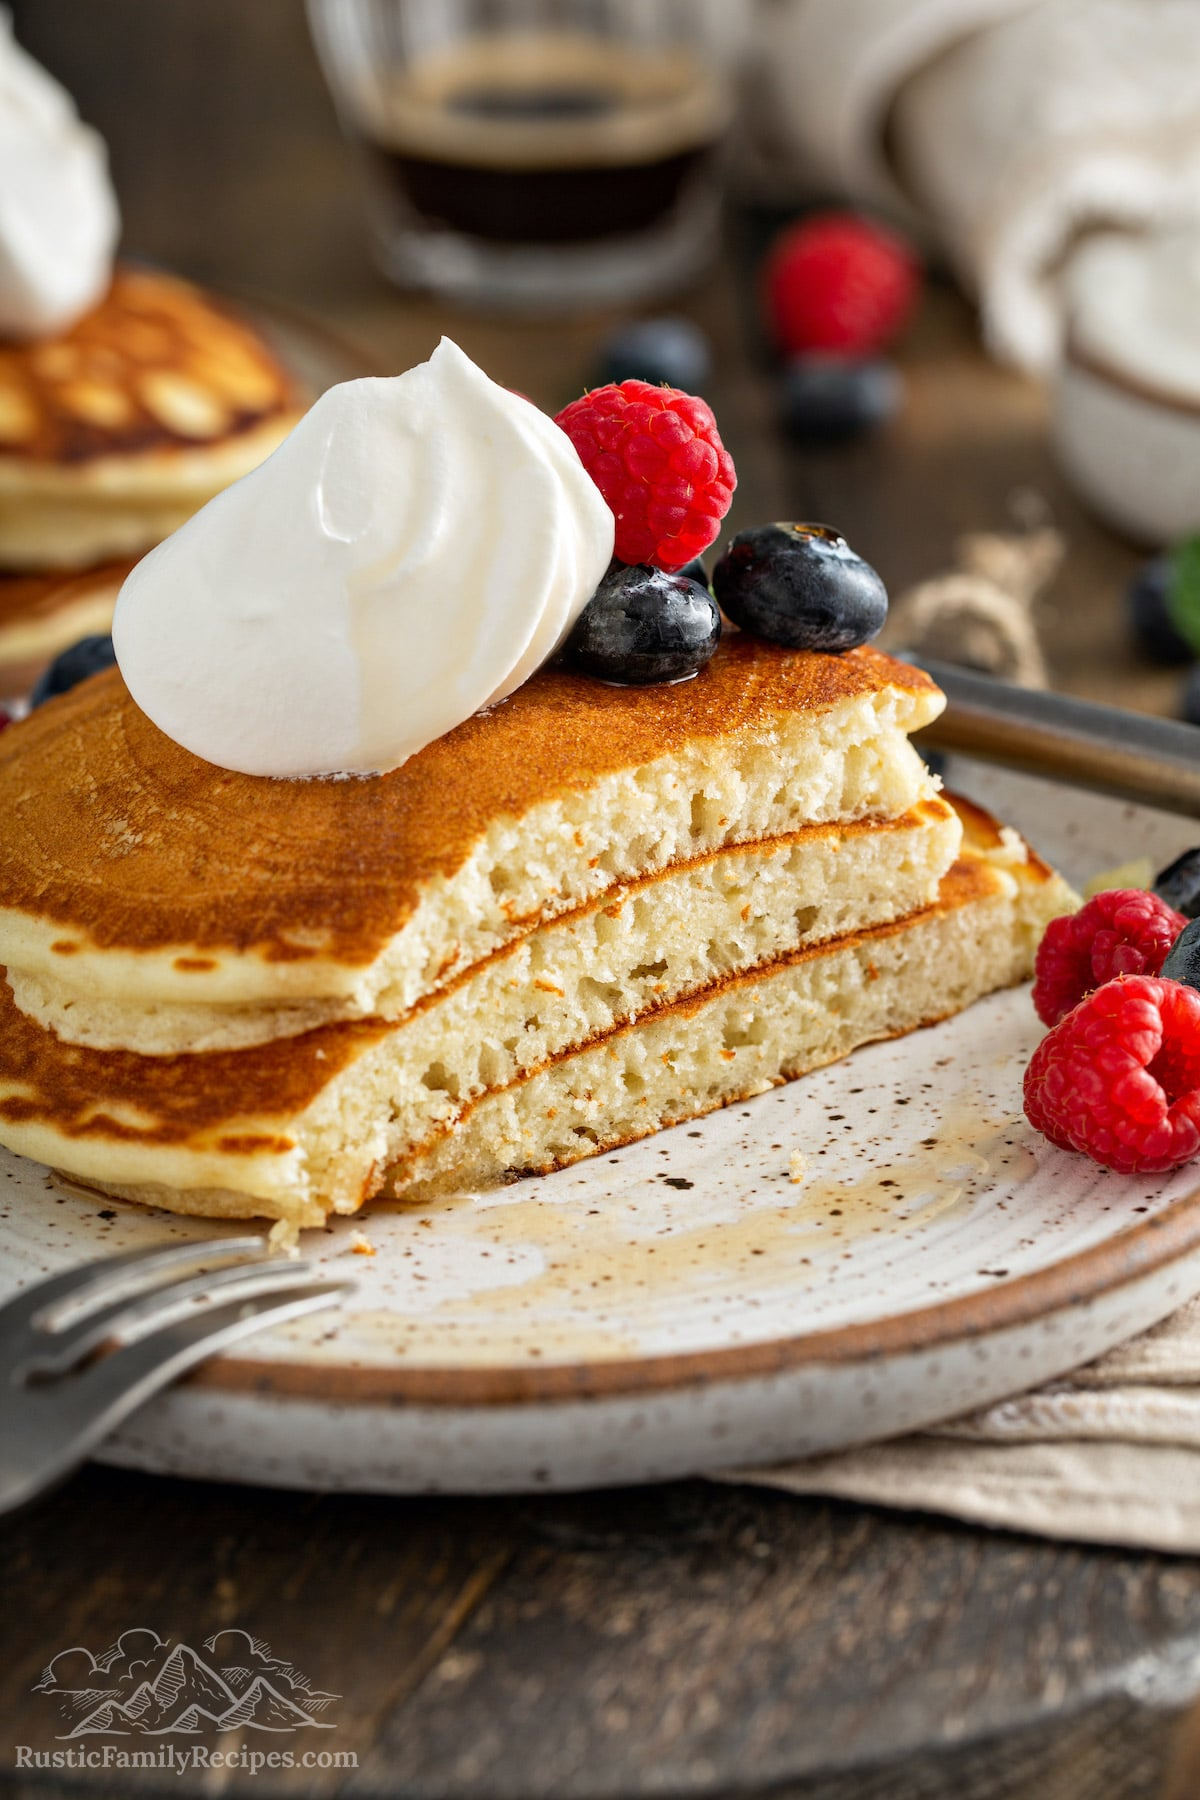 A stack of fluffy pancakes on a plate with a bite sliced off